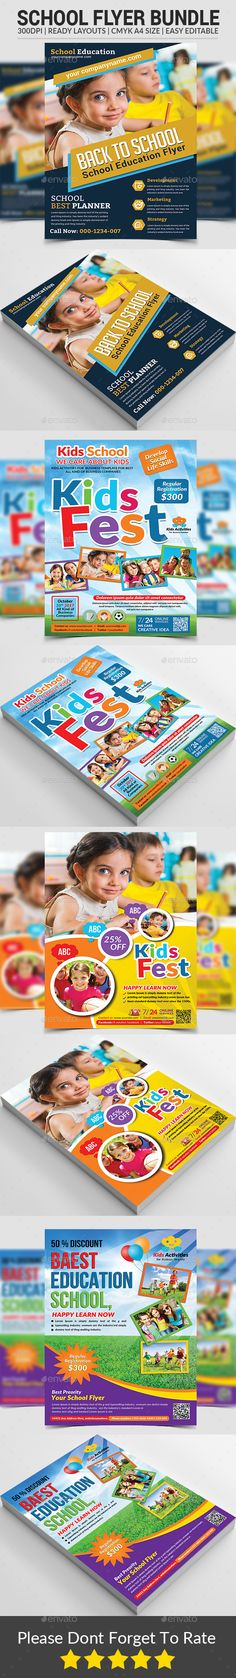 Buy School Flyers Bundle by afjamaal on GraphicRiver. This Flyers is made in photoshop the files included are help file and photoshop psd's. Brochure Layout, Brochure Design, Flyer Design, Colegio Ideas, Birthday Flyer, Lato Font, Education Banner, Flyer Printing, Insert Image